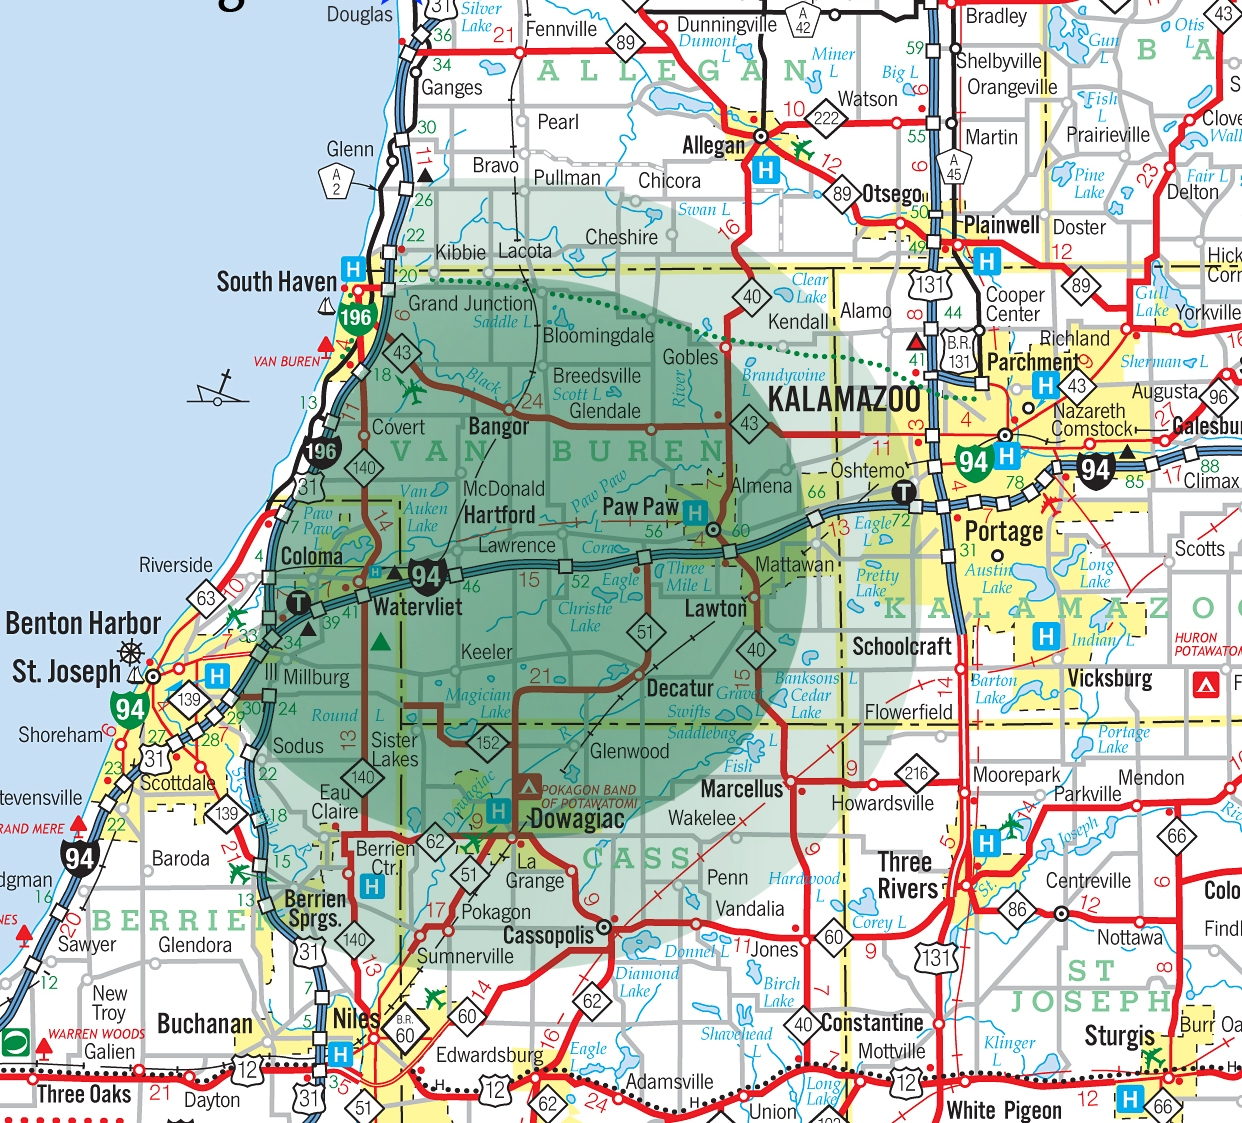 here's a map where we rent jet skis in southwest michigan